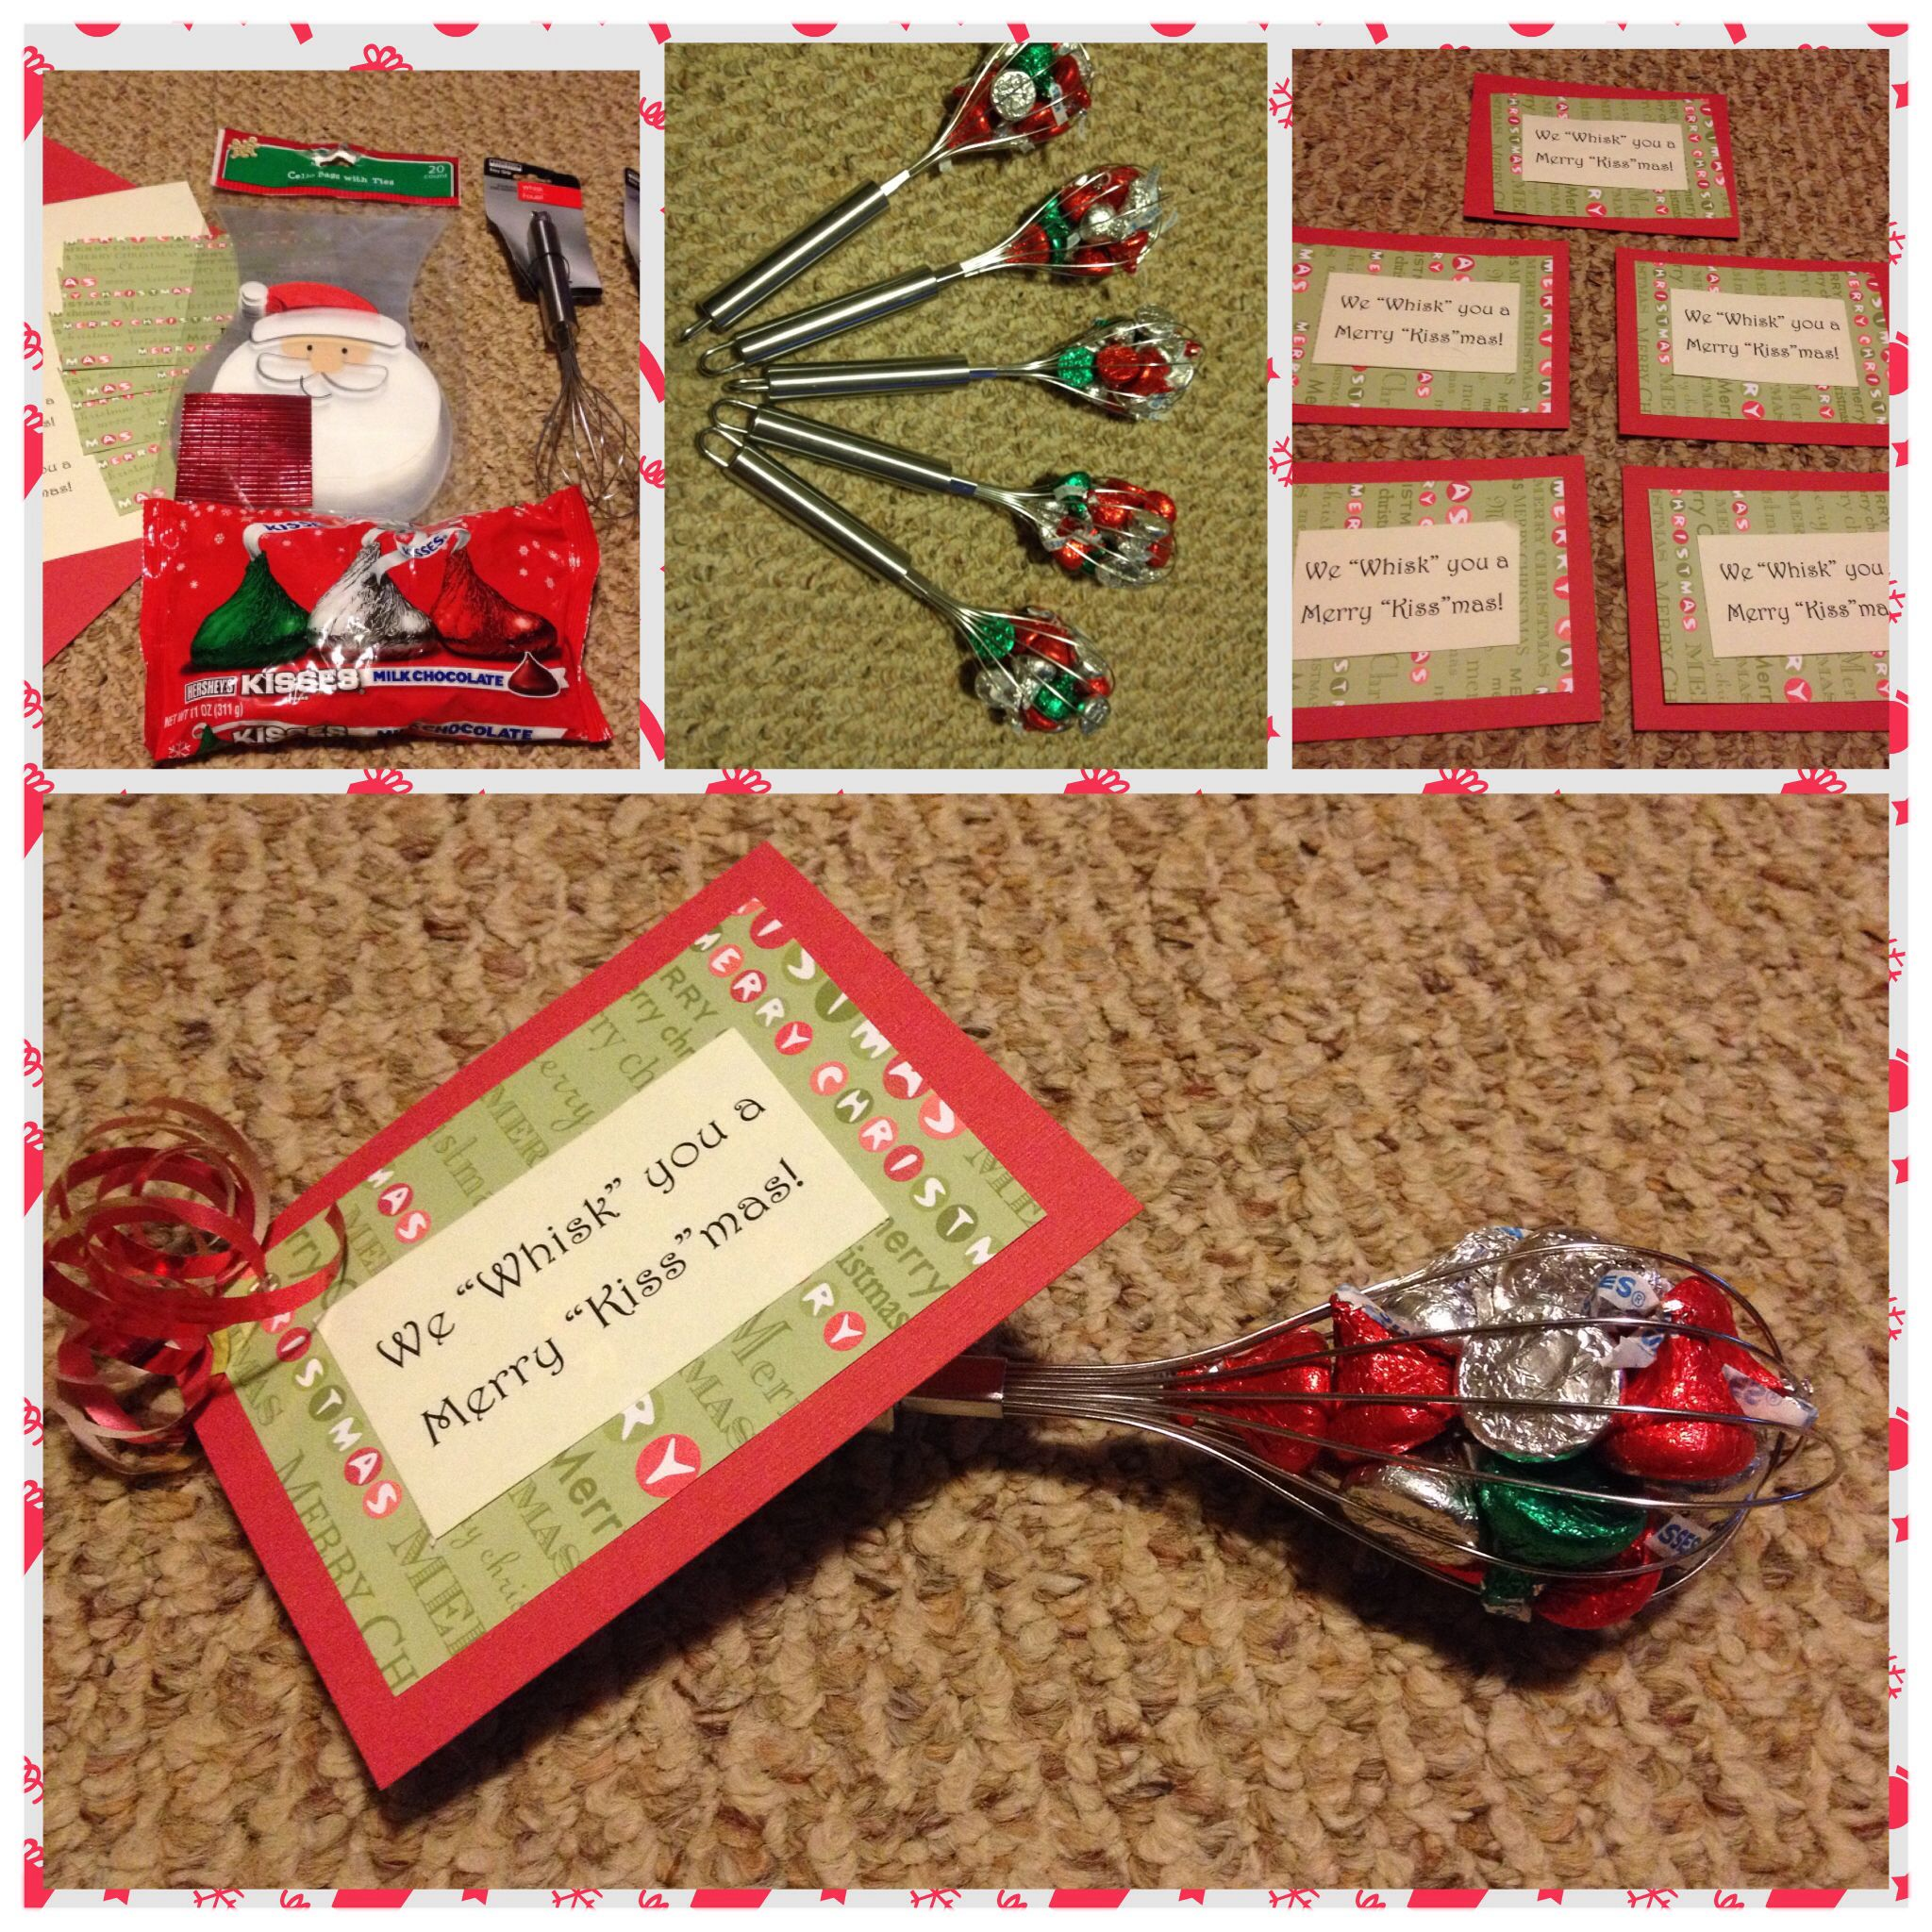 Pin by robyn boss on crafts pinterest for Secret santa craft ideas